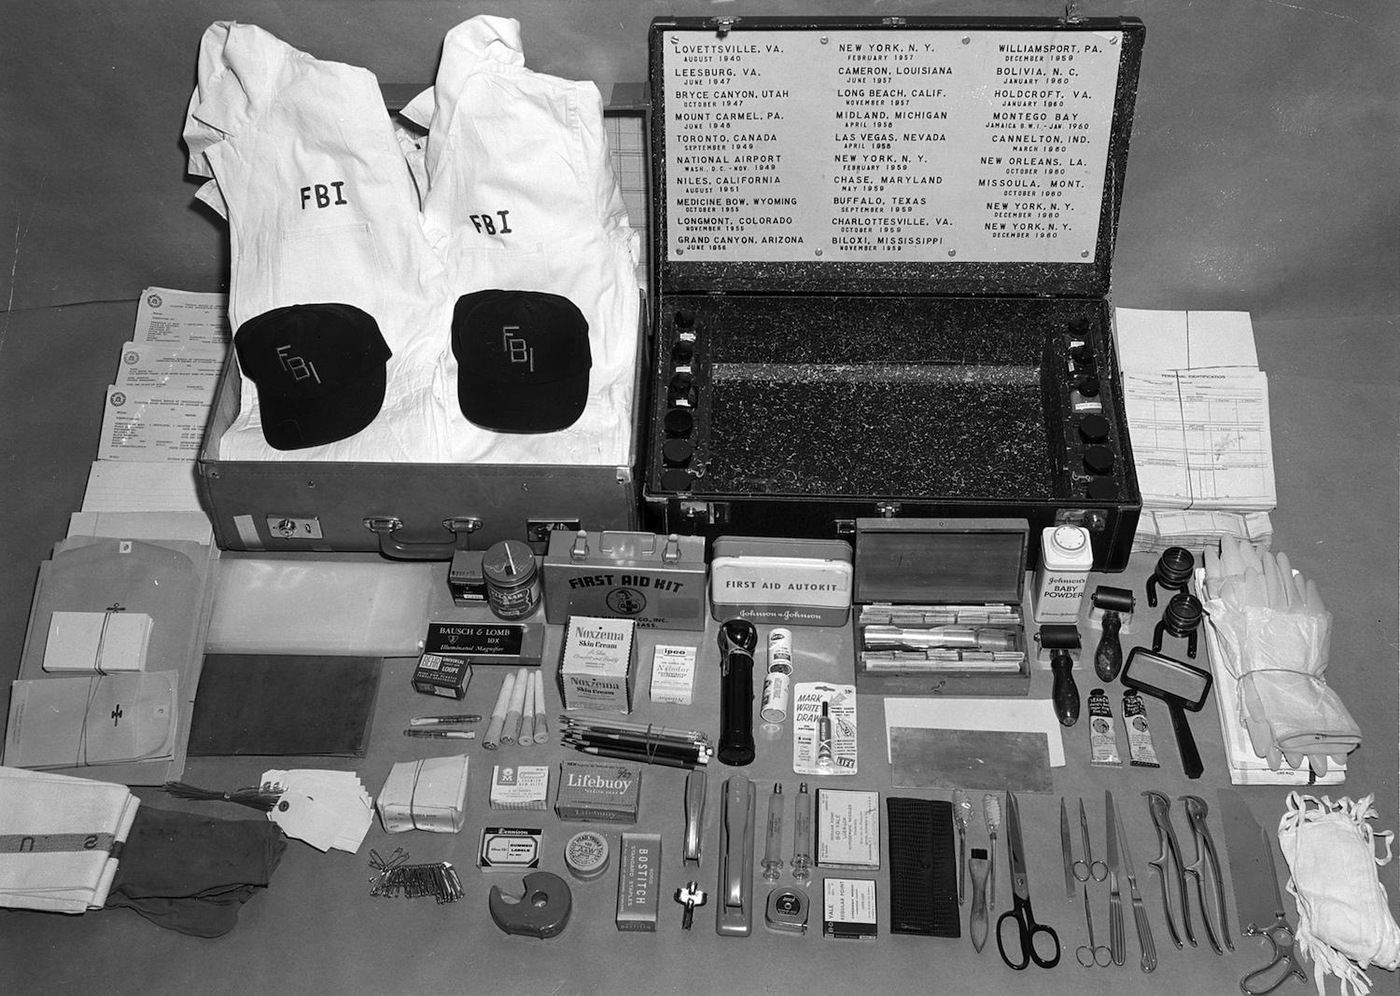 Tools and equipment of early FBI Disaster Squad, formed in August 1940 to help identify victims of airline crashes and other events.